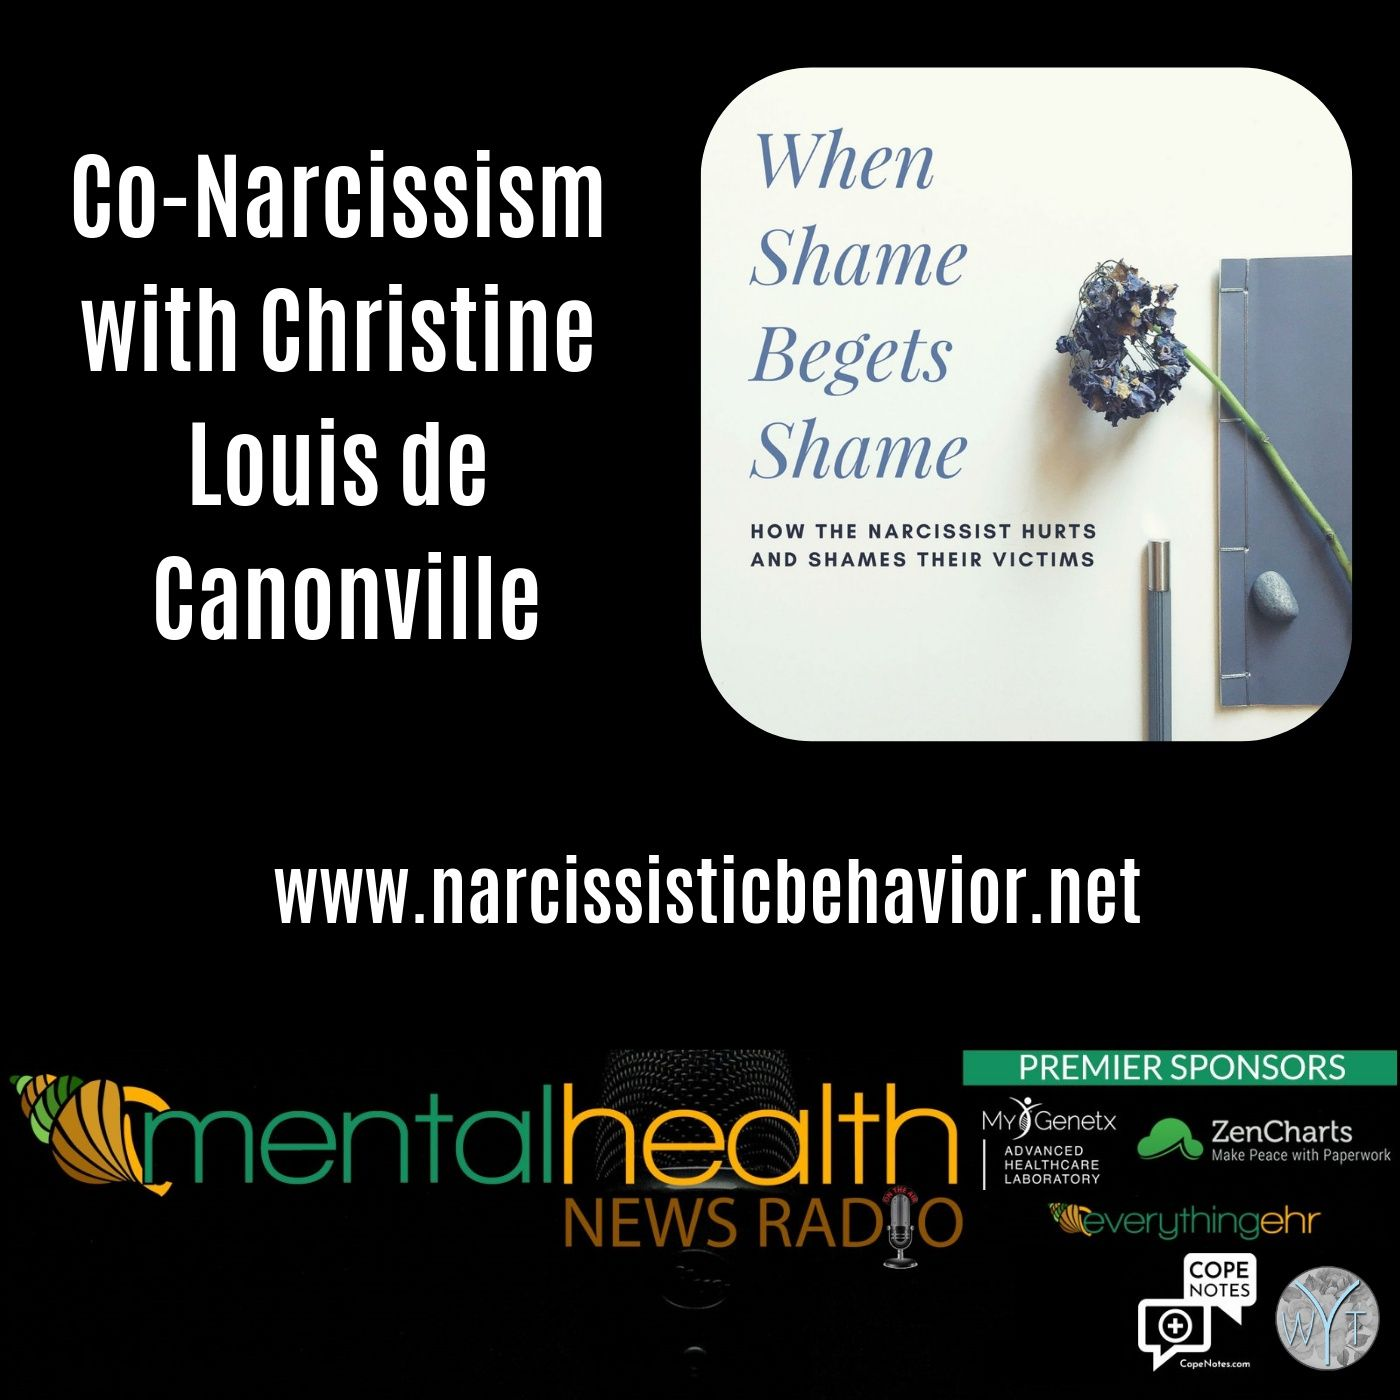 Mental Health News Radio - Co-Narcissism with Christine Louis de Canonville